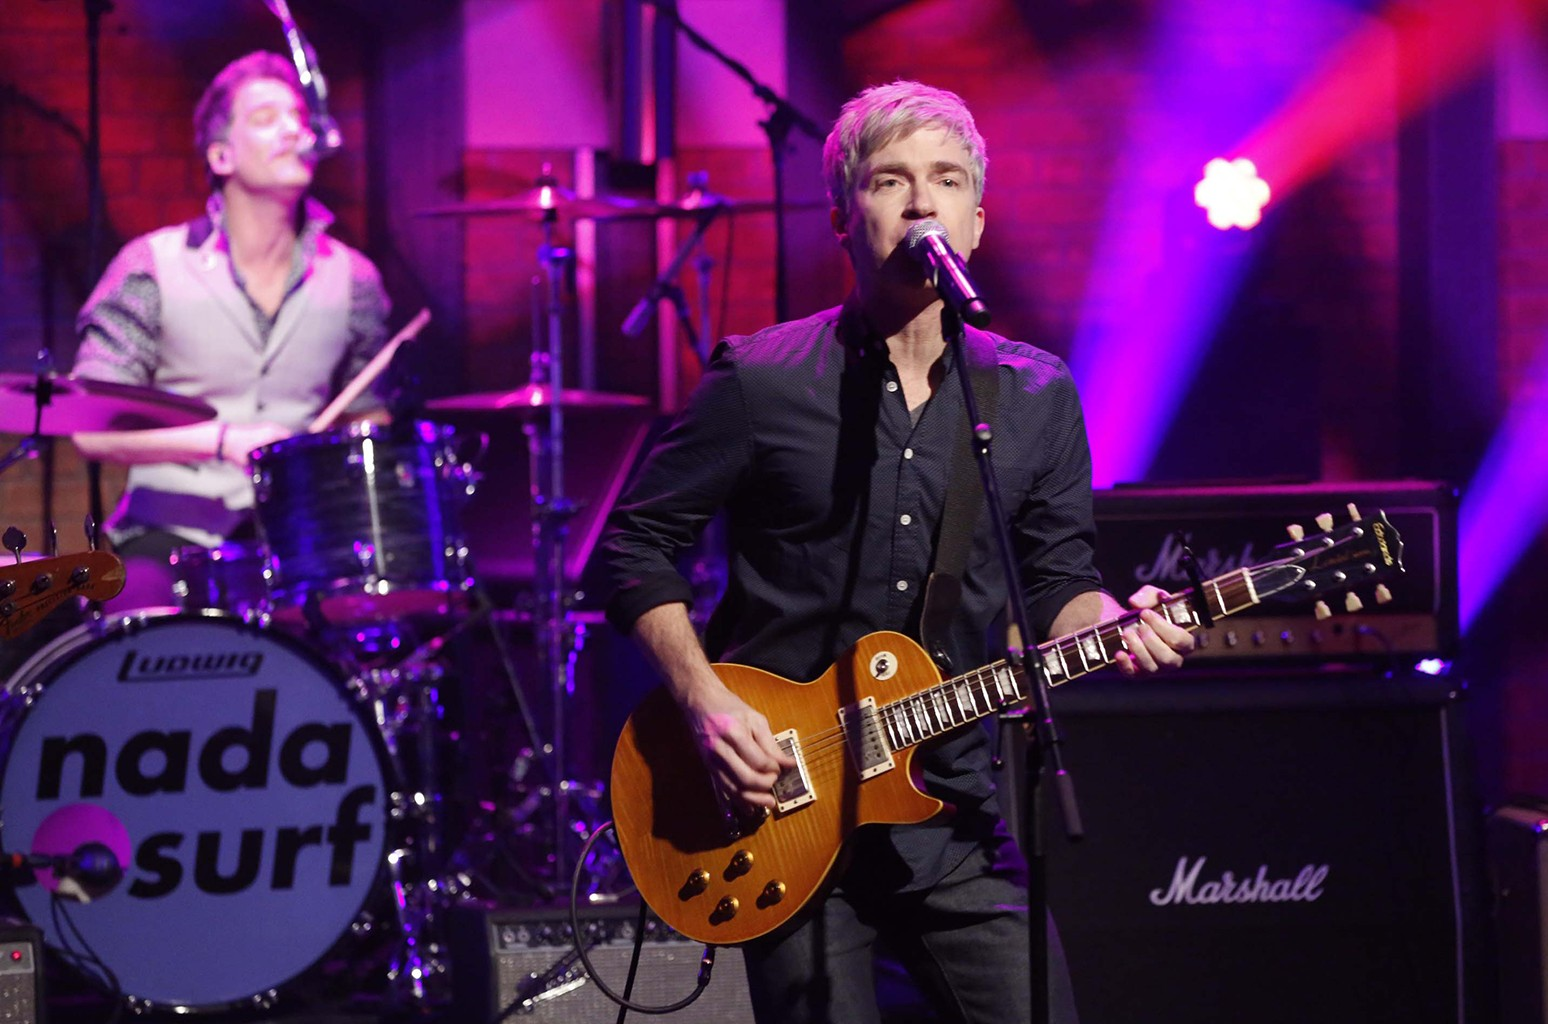 Nada Surf perform on Late Night with Seth Meyers on Feb. 29, 2016.